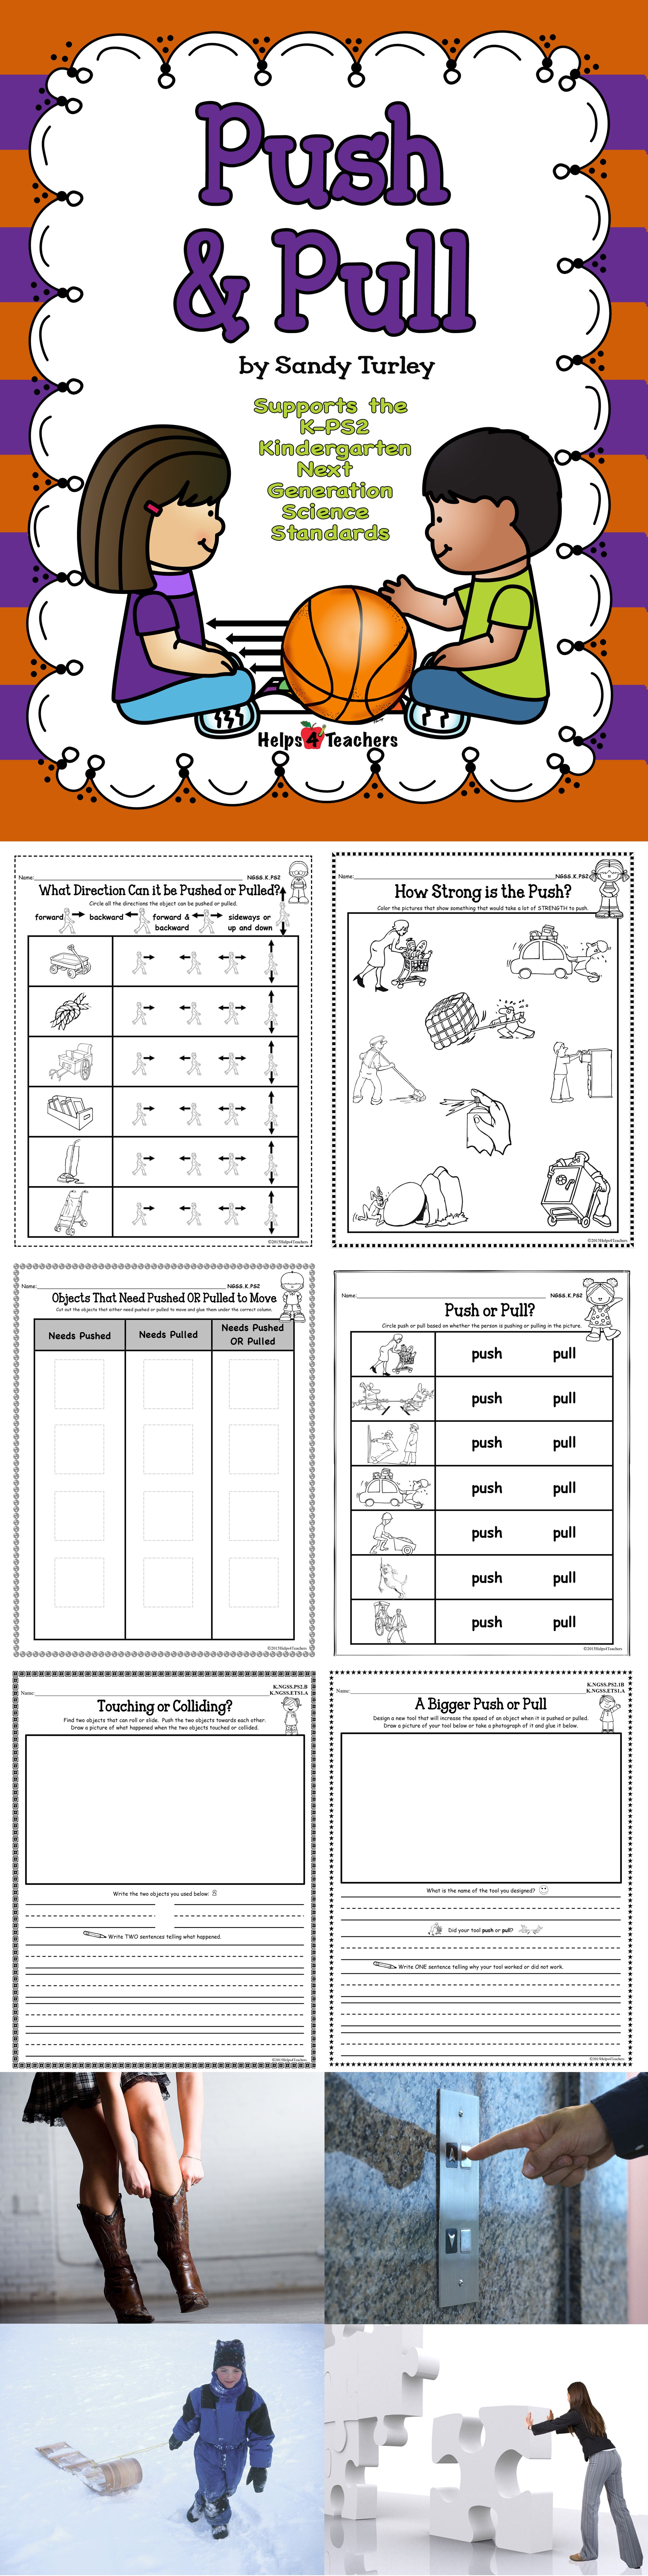 Activity Sheets Needed For Lessons On The Following Push